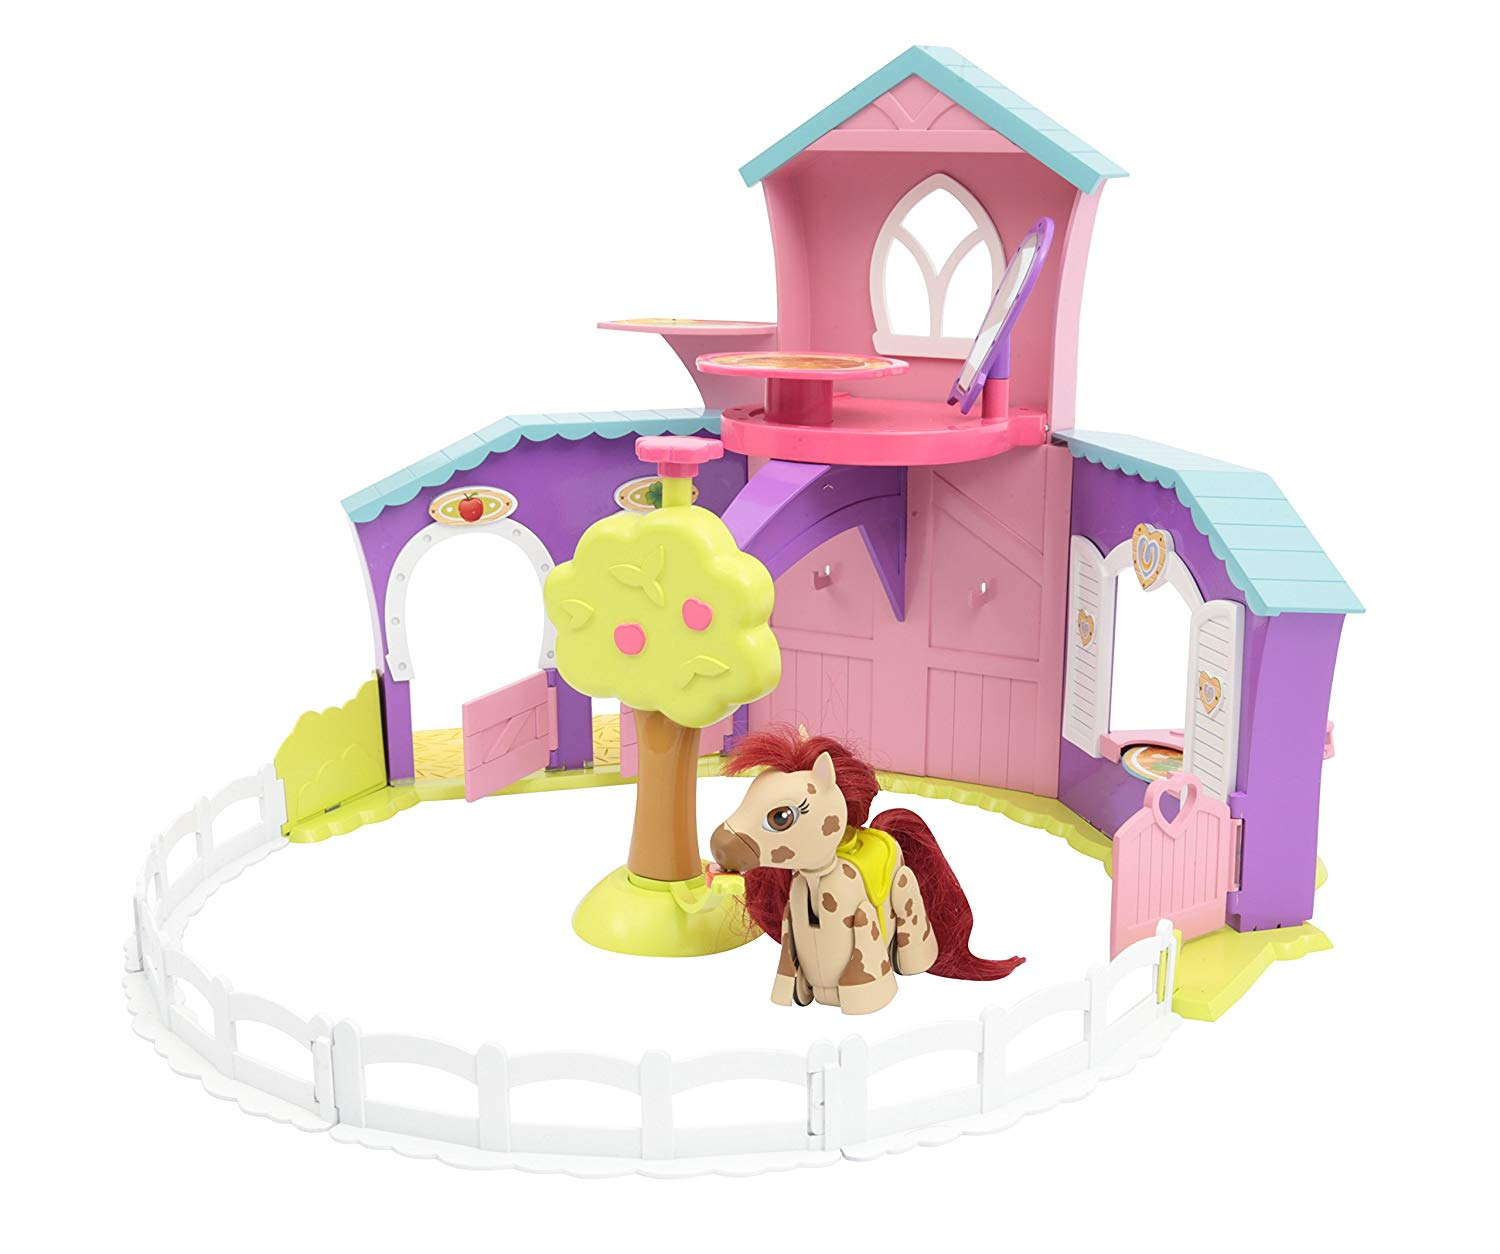 Pet Parade Pony Parade Playset Ranch con Pony Esclusivo e Accessori.